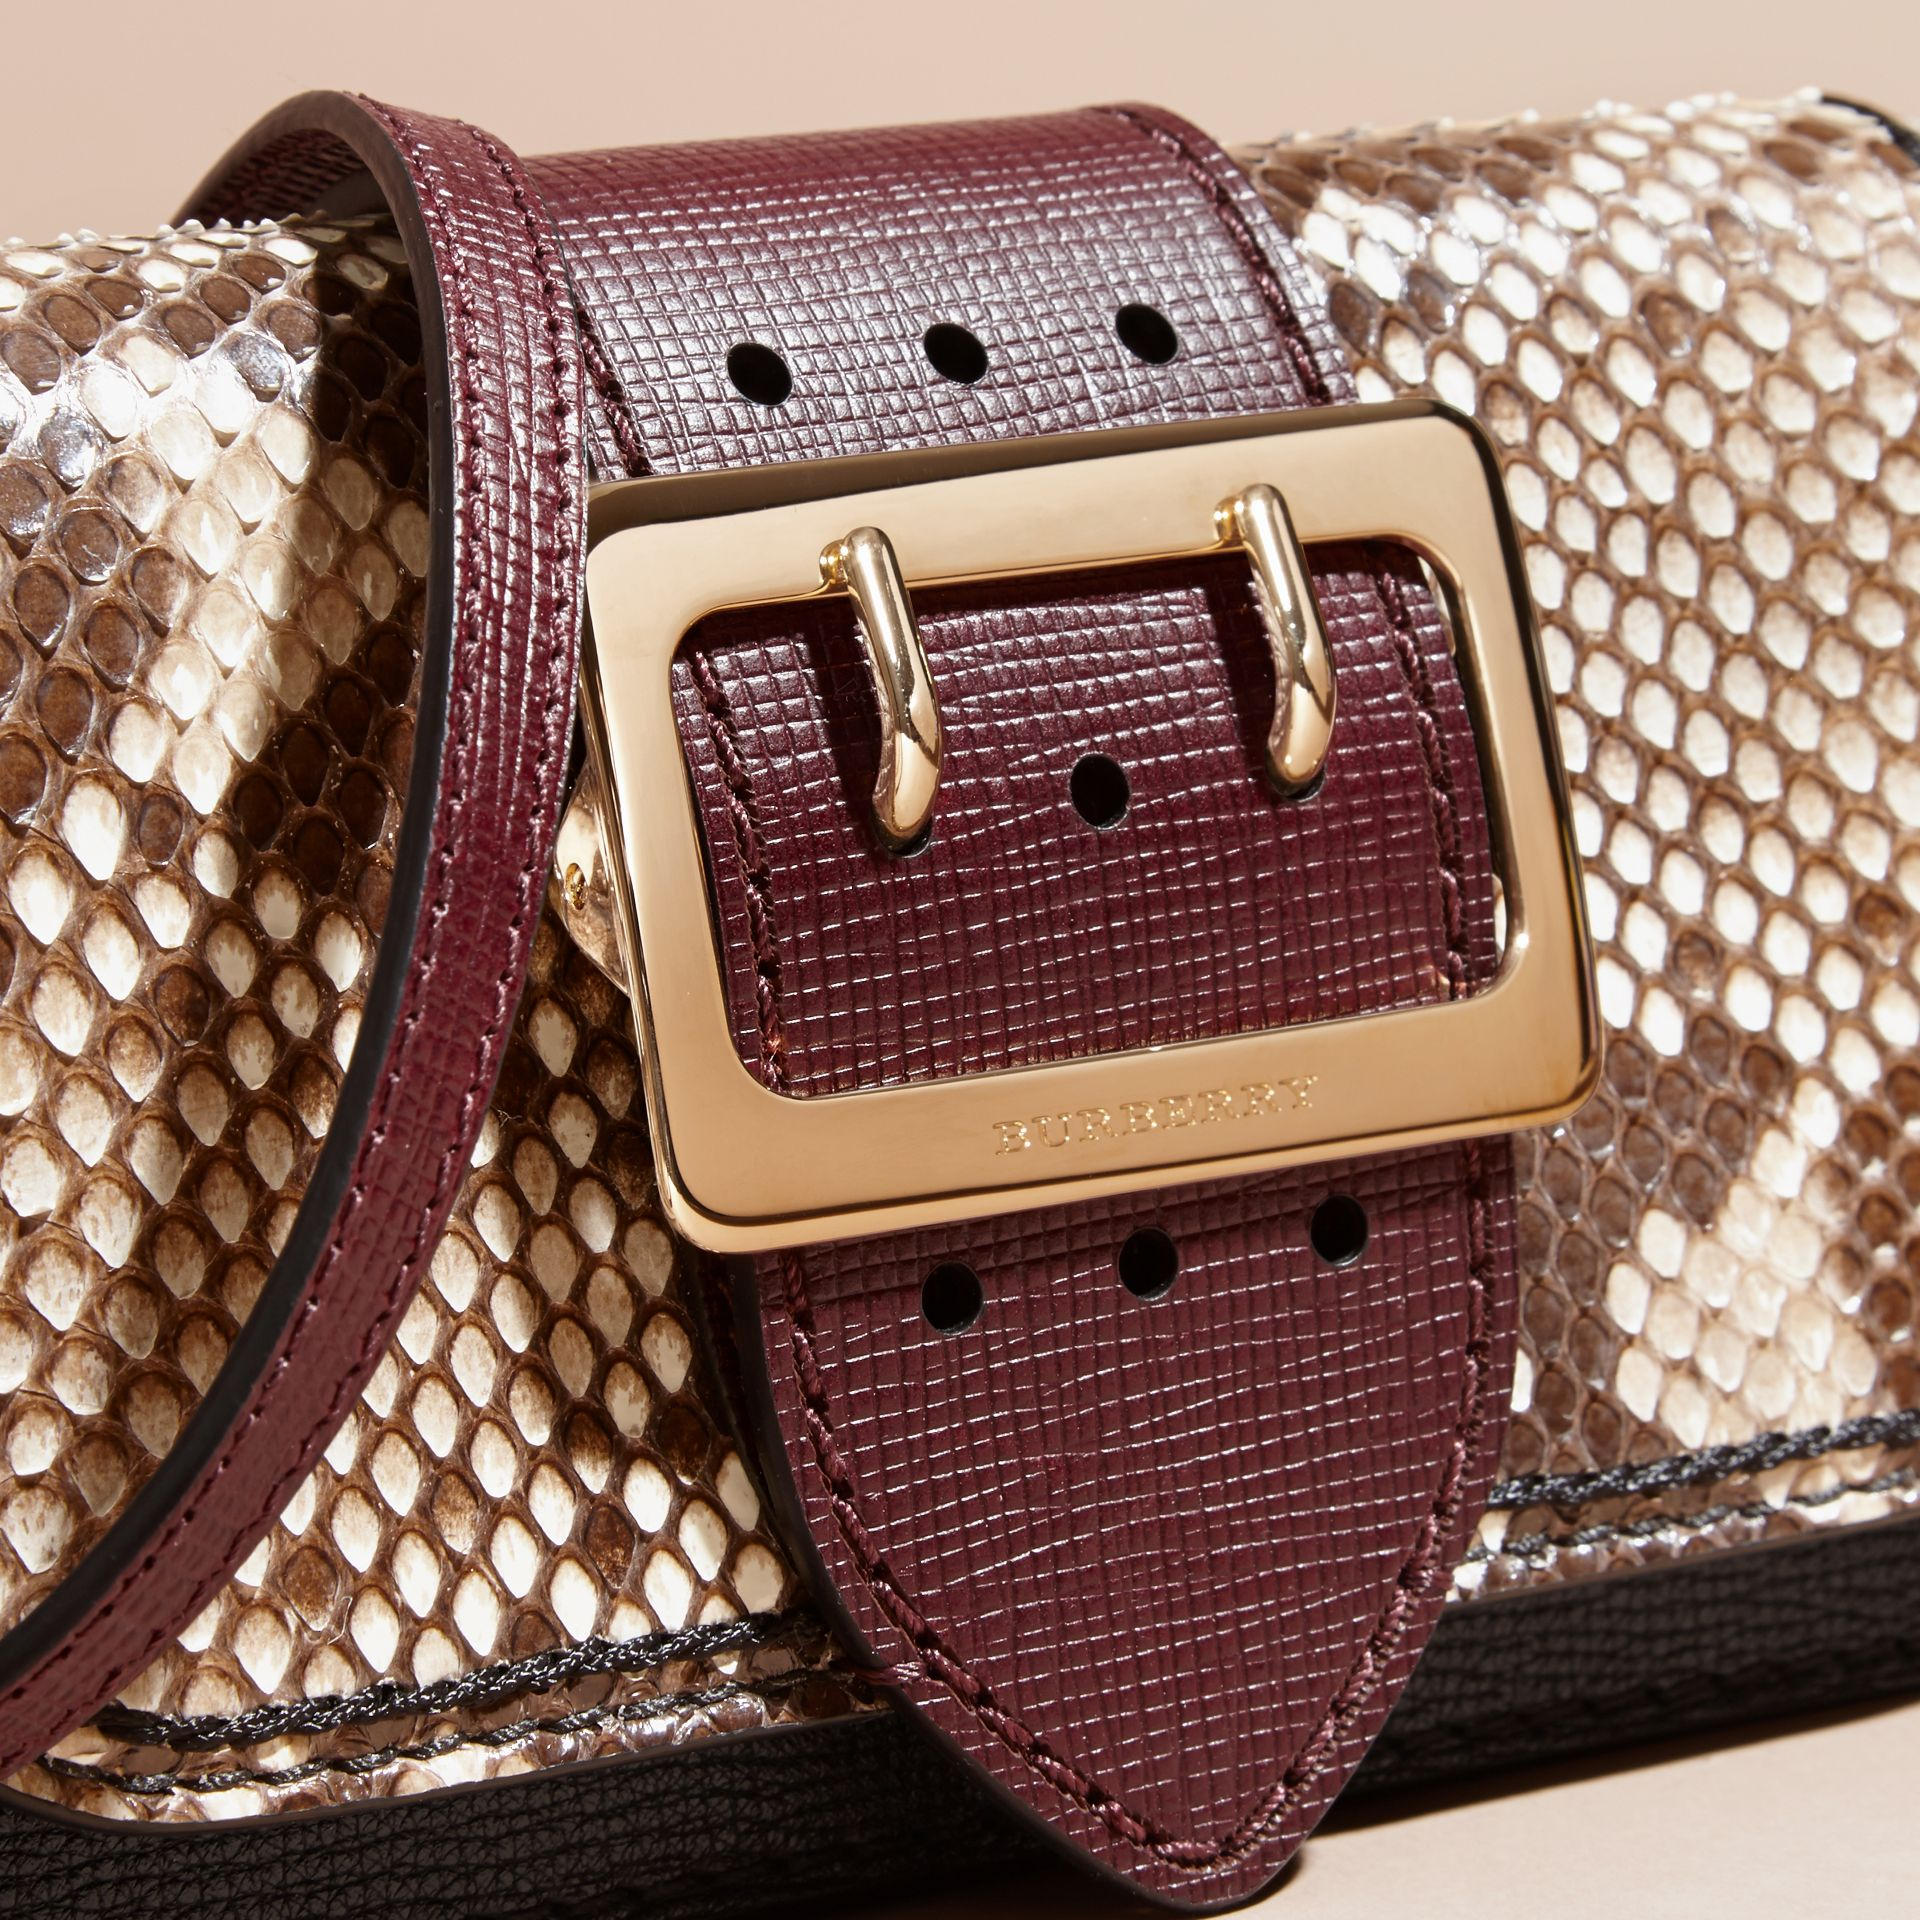 Natural / burgundy The Small Buckle Bag in Python and Leather - gallery image 2